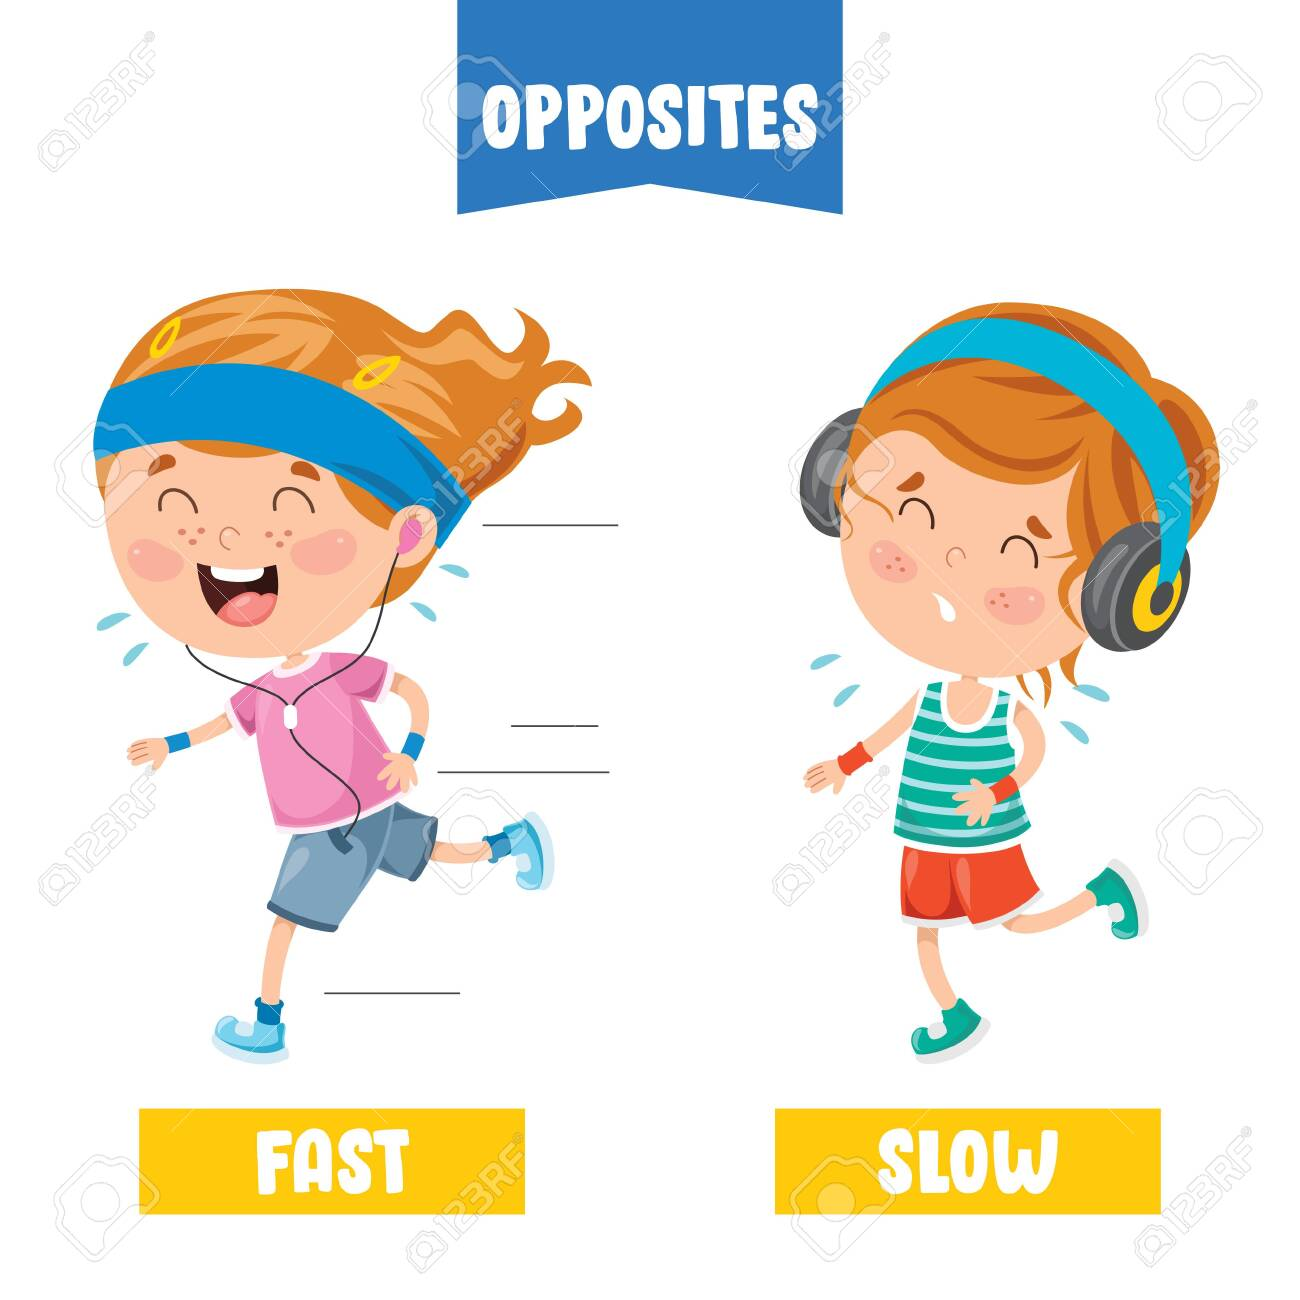 Opposite Adjectives With Cartoon Drawings - 140348659